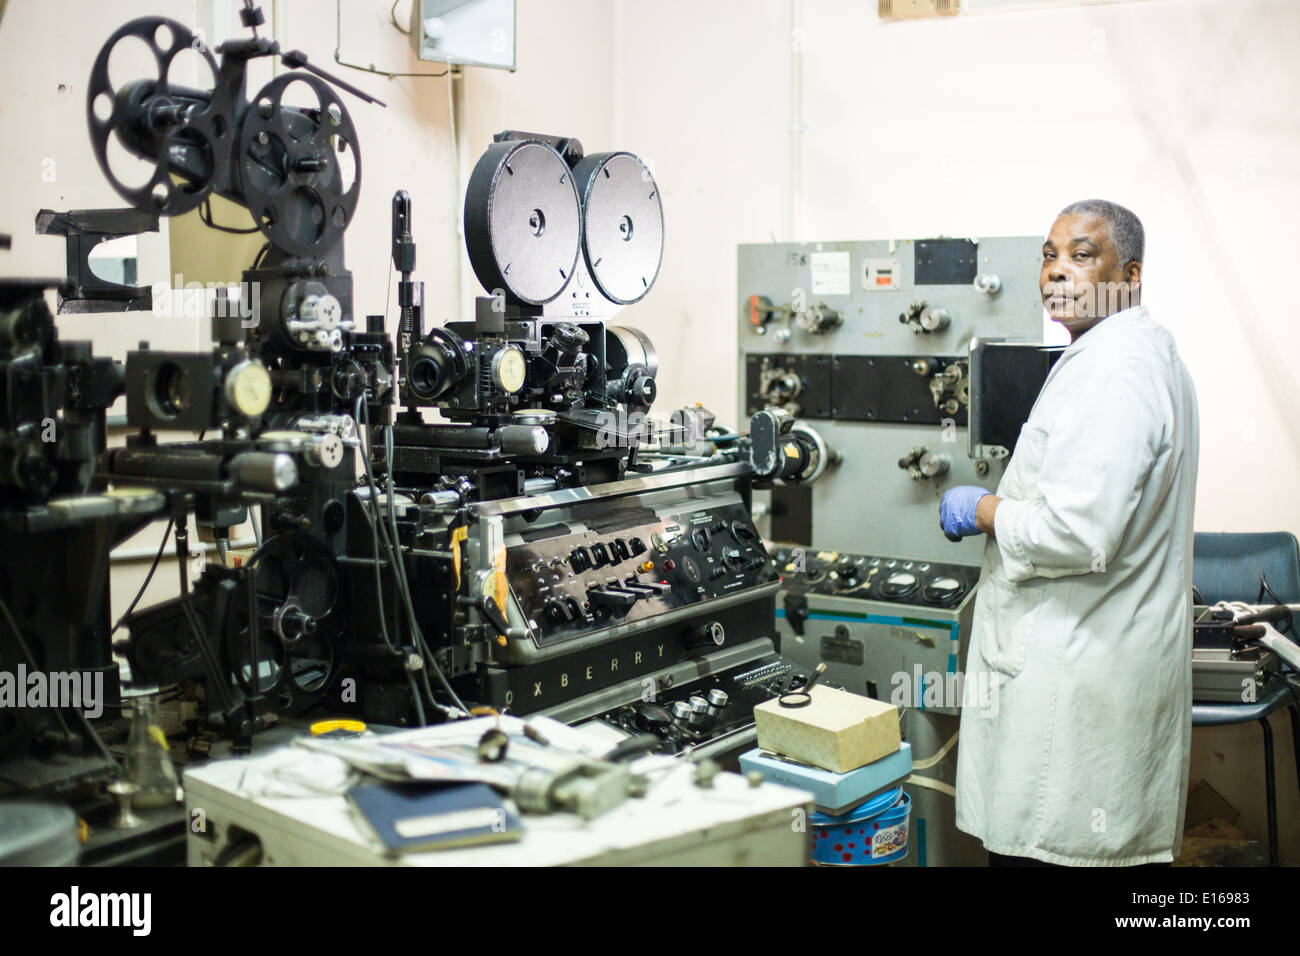 technician in lab processing film with oxberry equipment in background - Stock Image